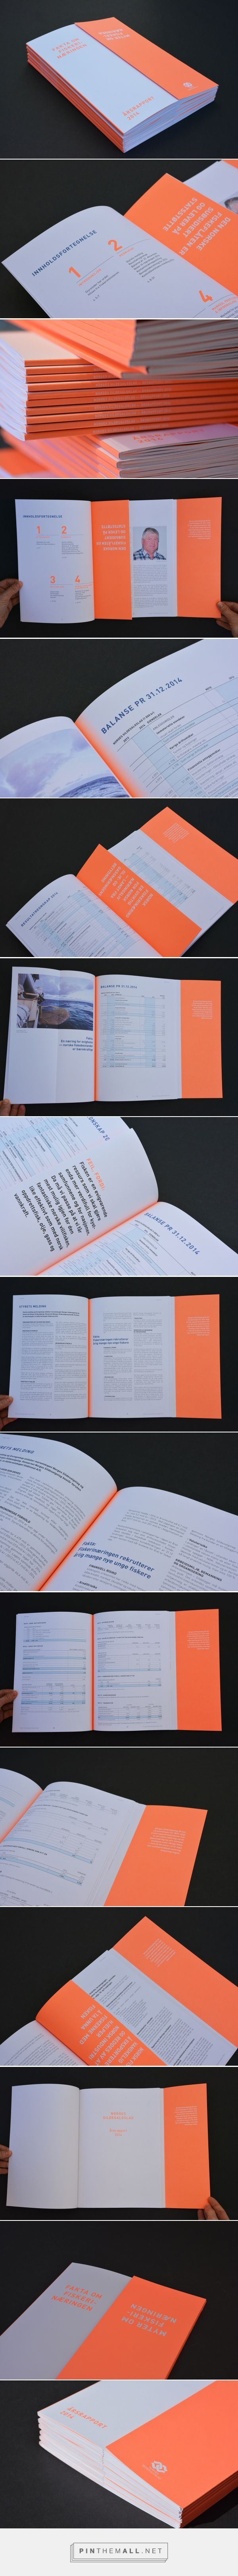 Myths and facts   Annual report by Ragne Balteskard